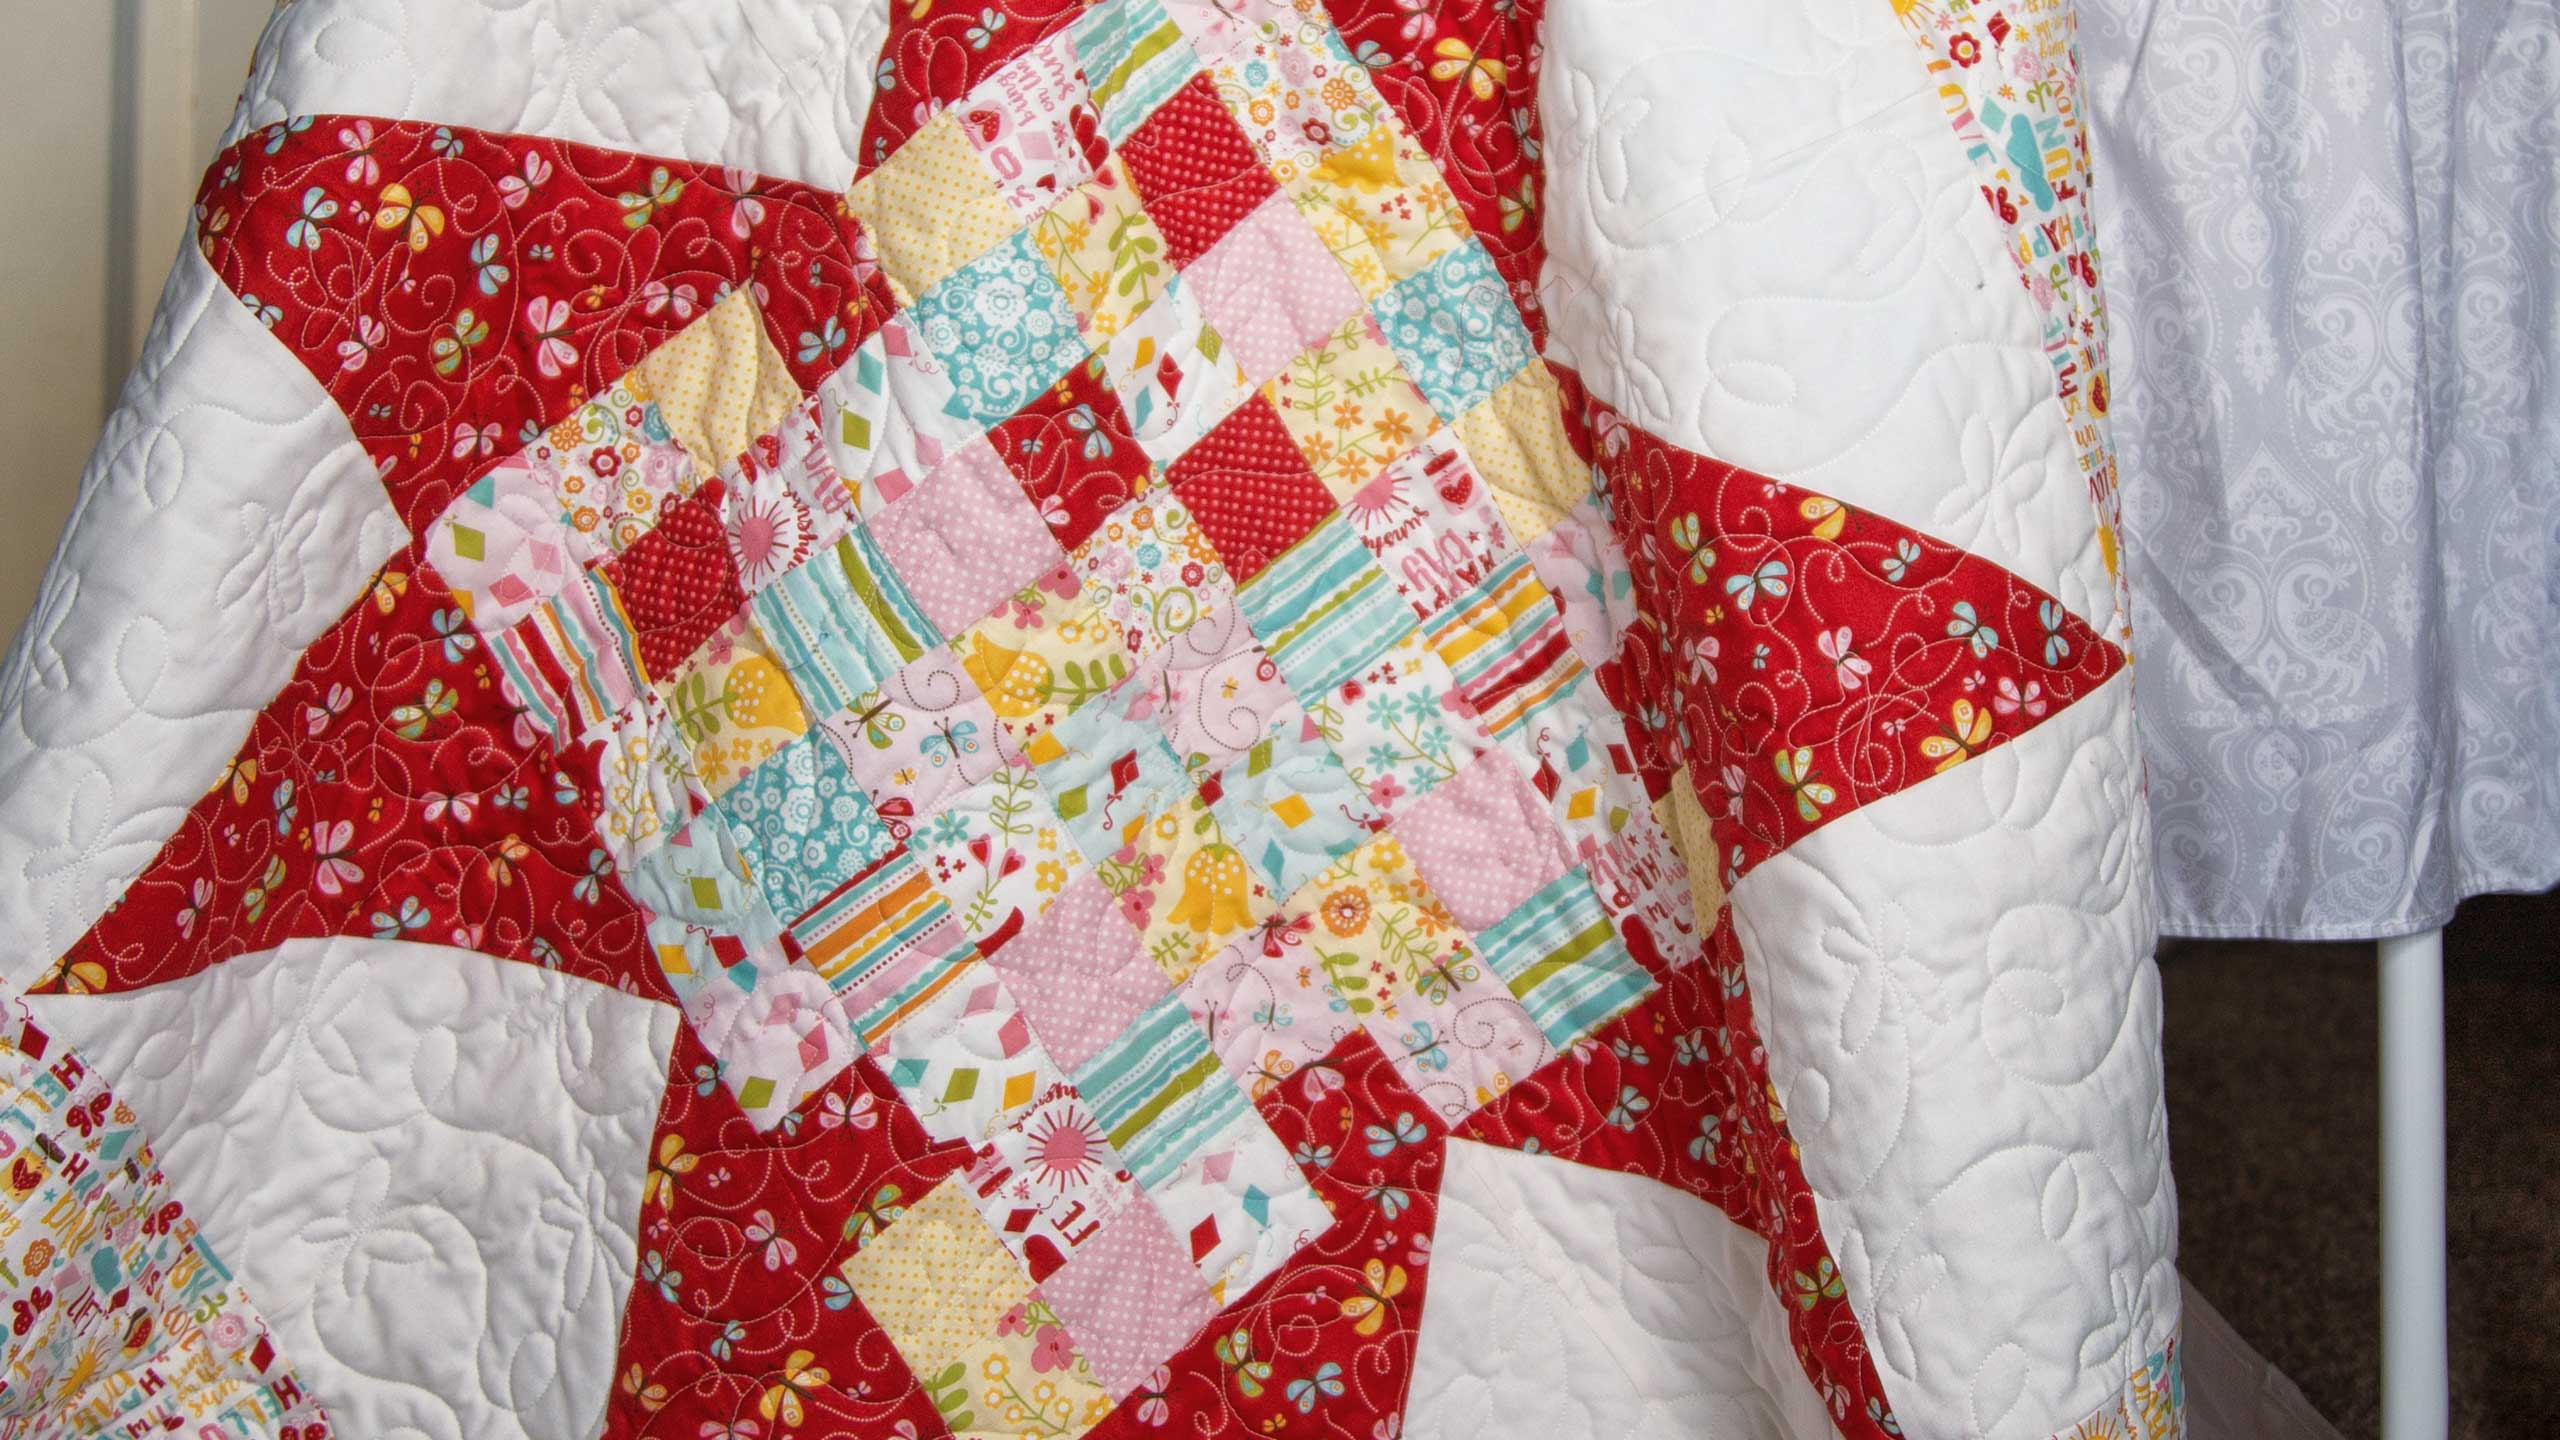 Baby Blocks Quilt Pattern.Make A Baby Blocks Quilt With Jenny Quilting Tutorials